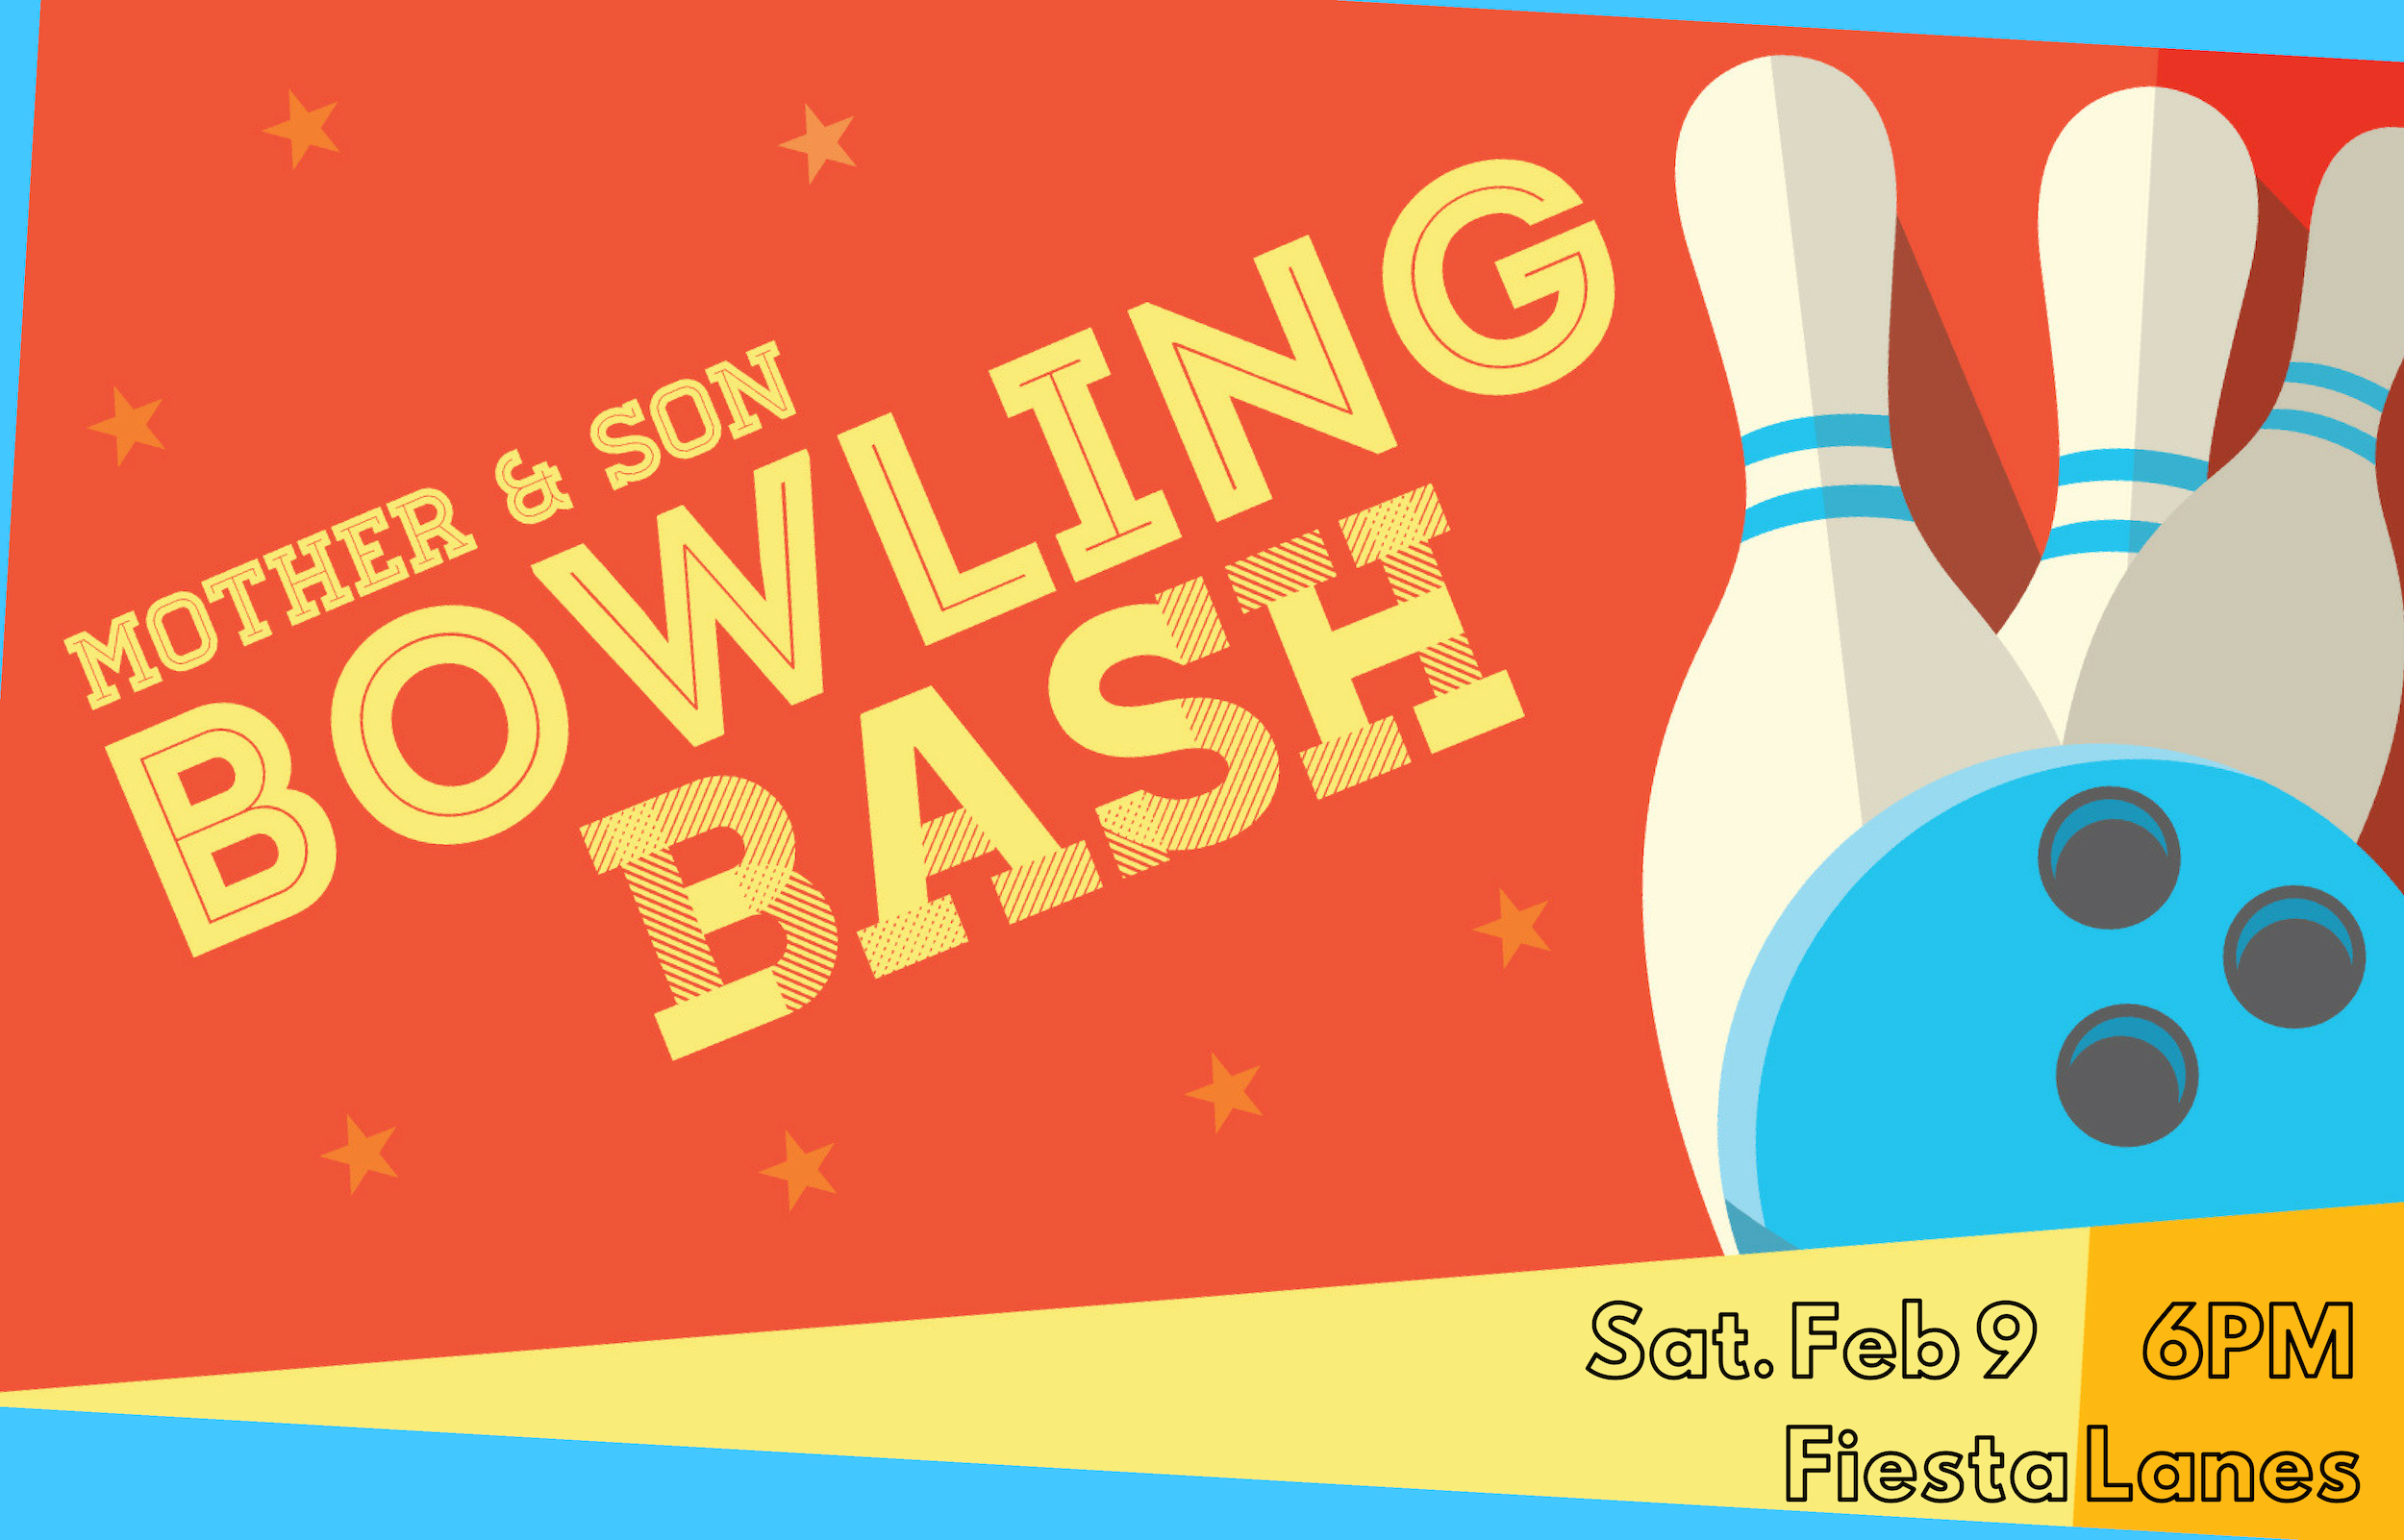 Mother Son Bowling Website rotator image